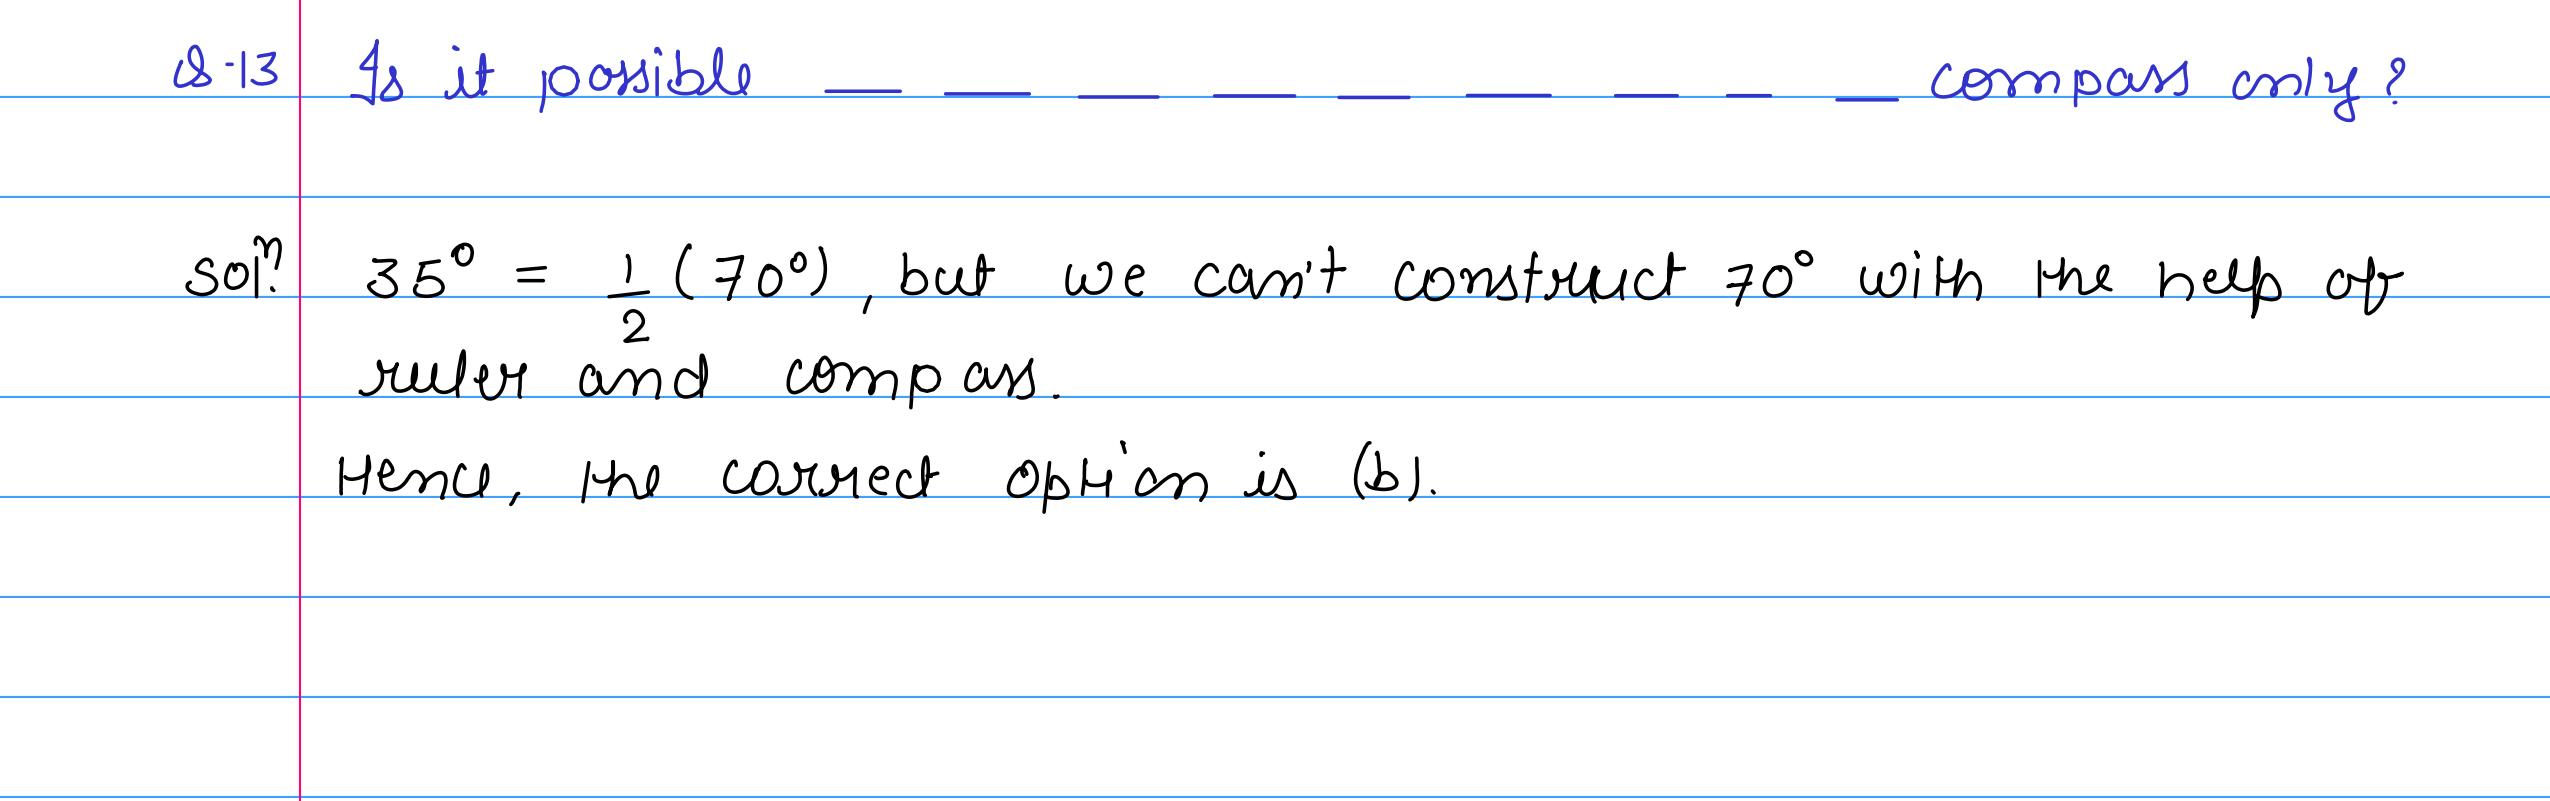 solution of CCE of construction_9th_13